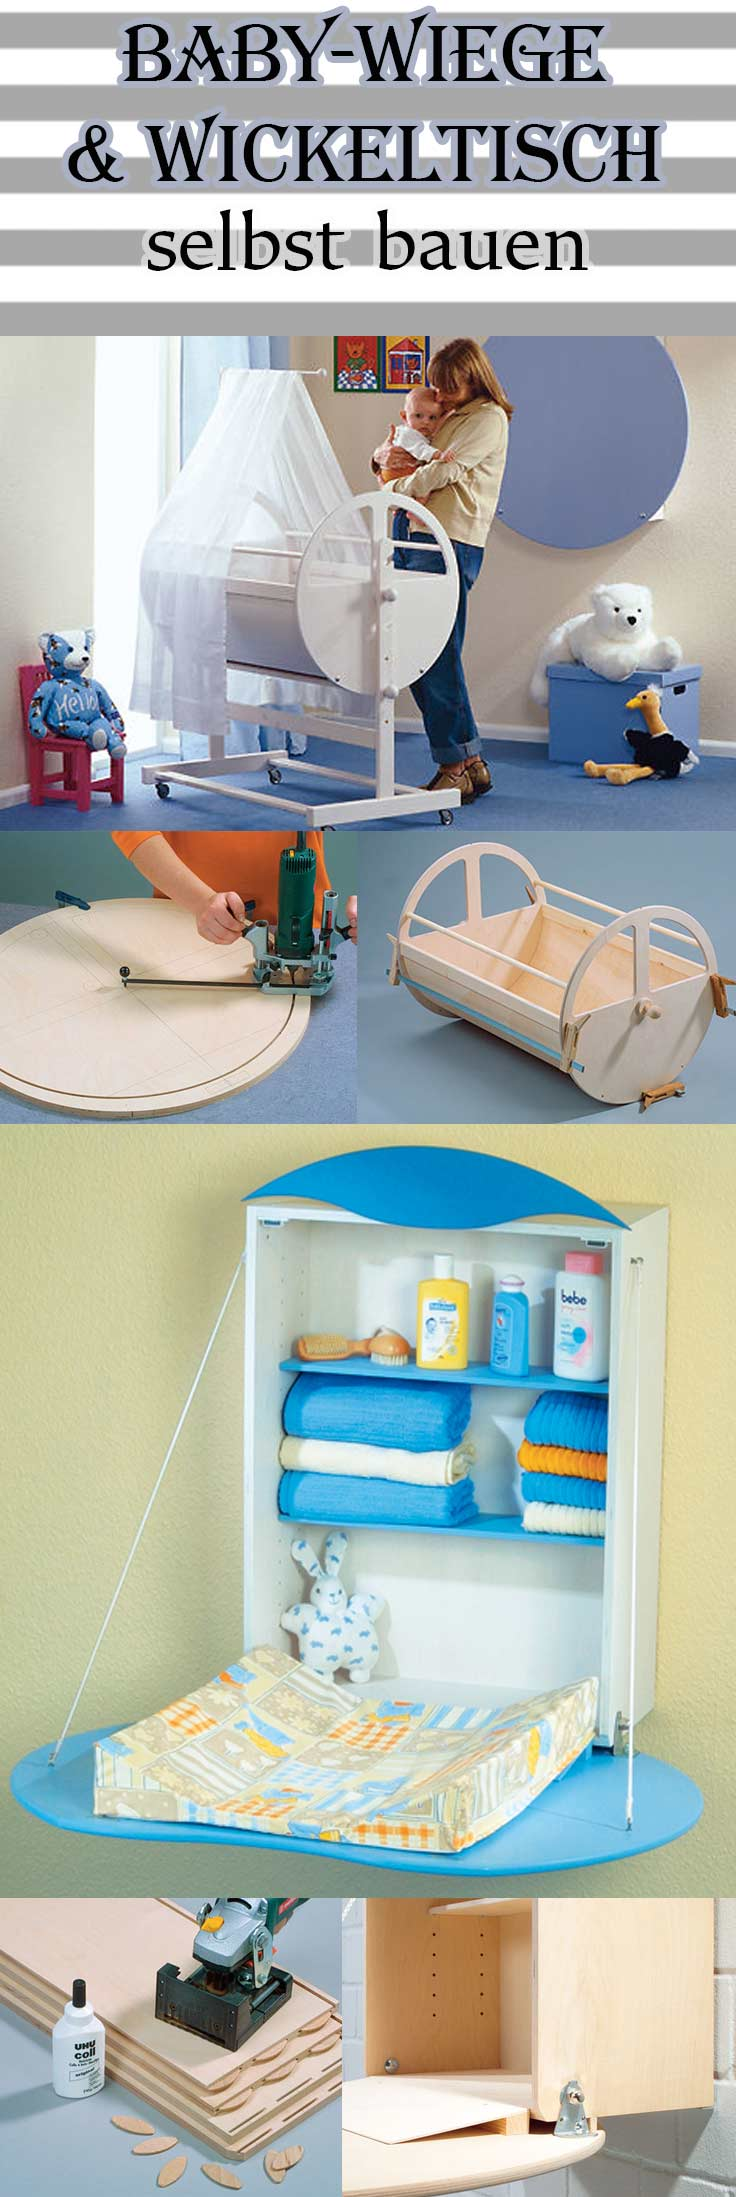 bauanleitung baby wiege selbst bauen kinder hobby diy pinterest baby wiege und. Black Bedroom Furniture Sets. Home Design Ideas